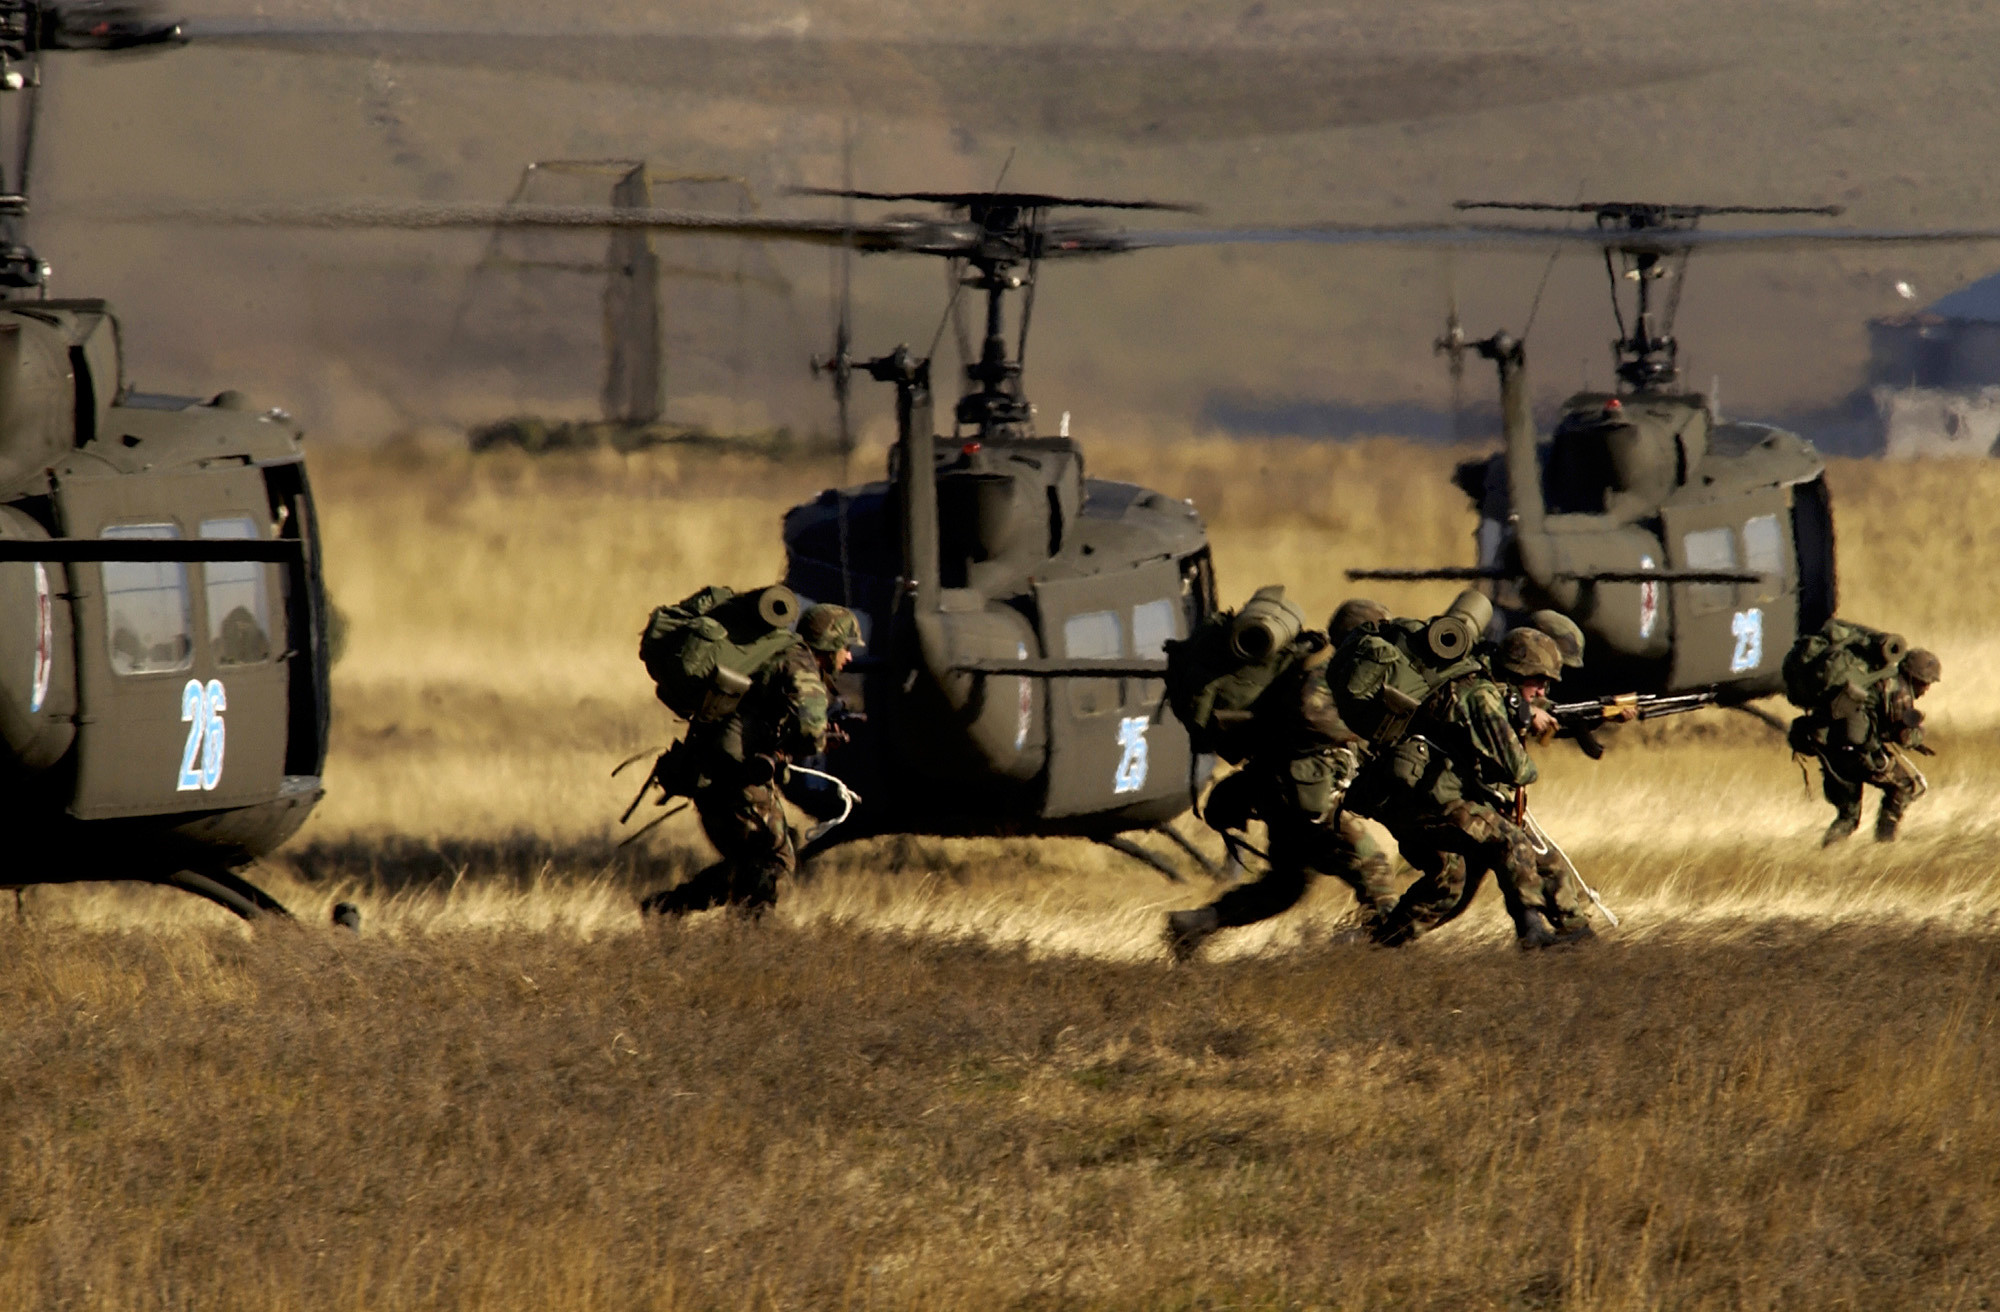 Military wallpapers hd 1920x1080 63 images - Military wallpaper army ...